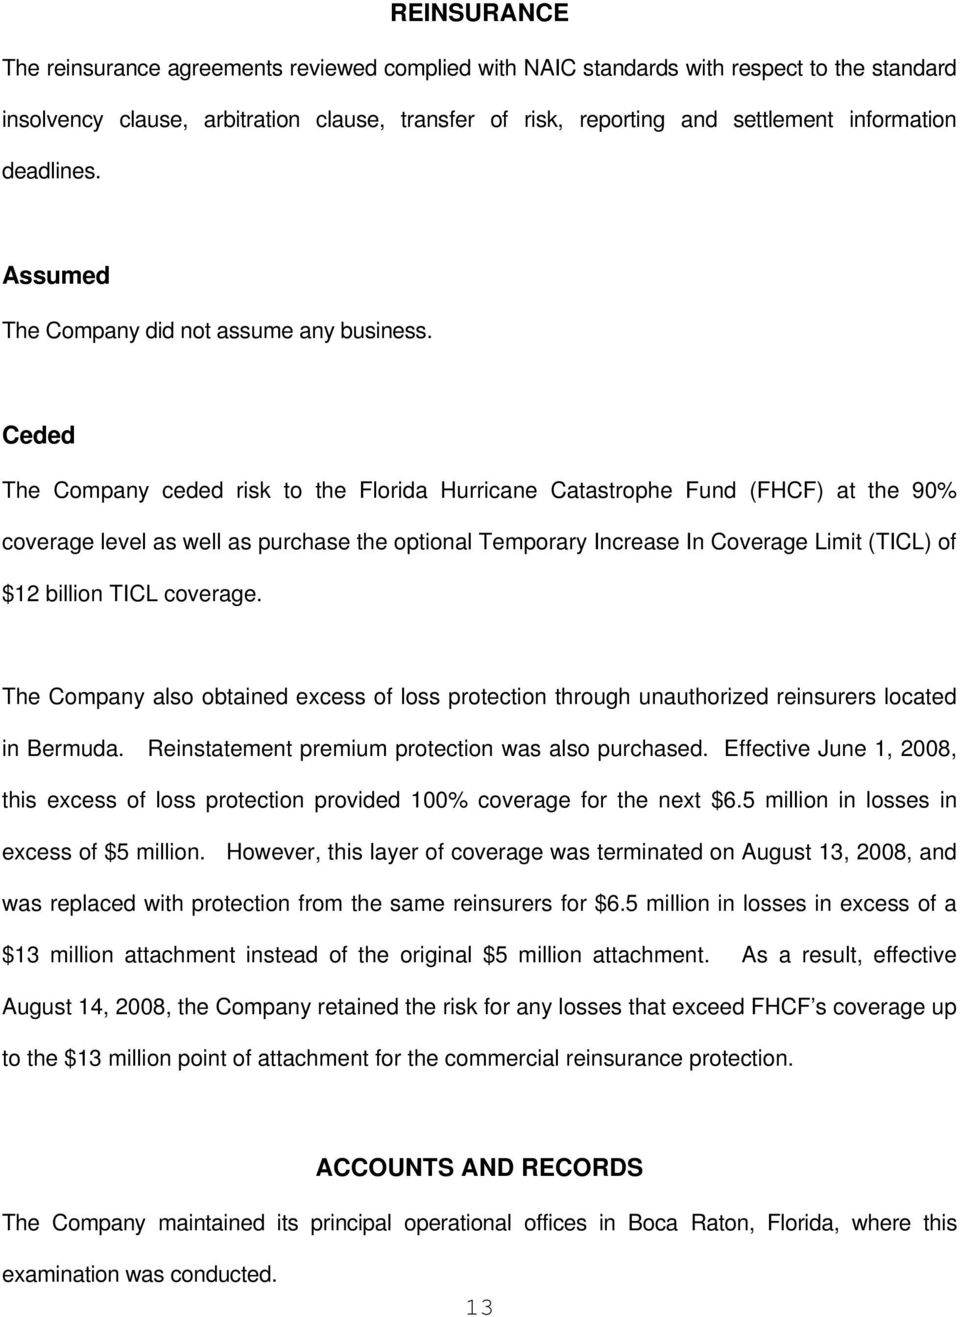 Ceded The Company ceded risk to the Florida Hurricane Catastrophe Fund (FHCF) at the 90% coverage level as well as purchase the optional Temporary Increase In Coverage Limit (TICL) of $12 billion